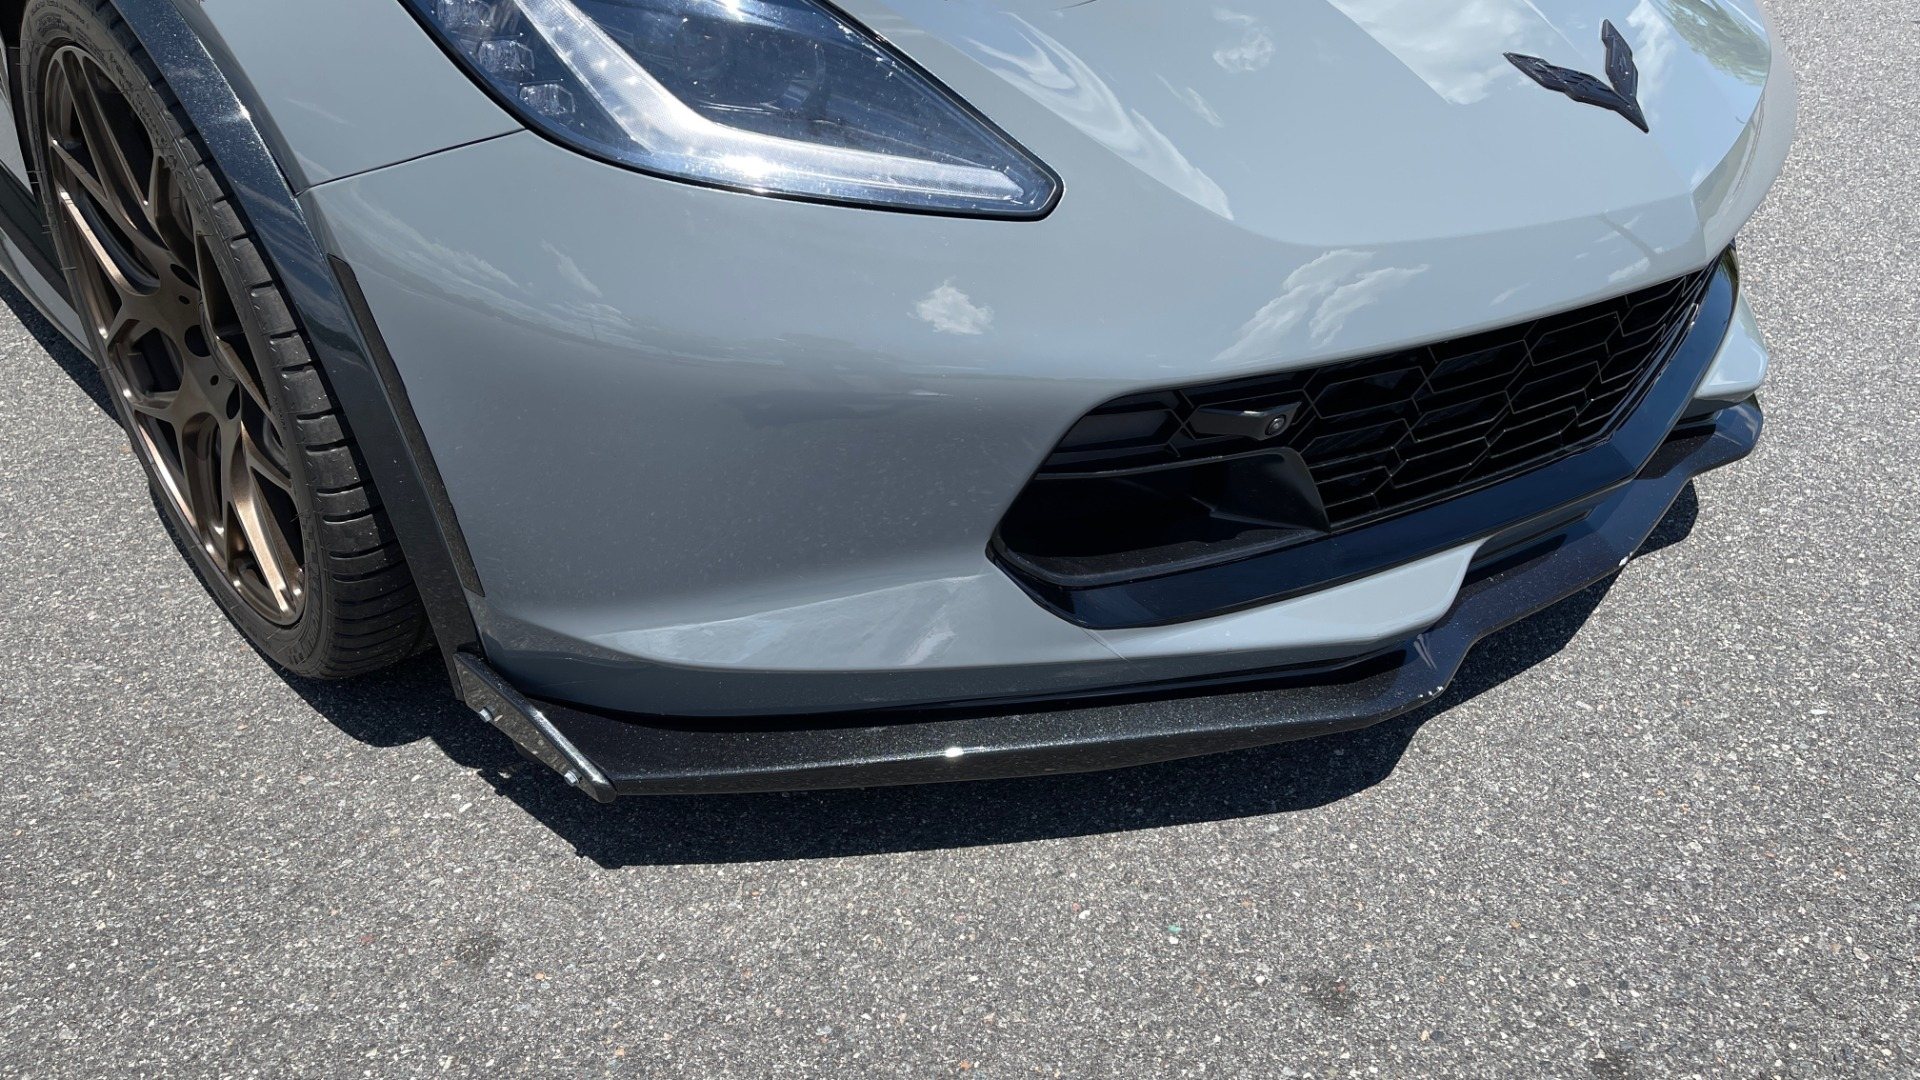 Used 2019 Chevrolet CORVETTE GRAND SPORT 3LT / SUPERCHARGED 6.2L V8 / NAV / REARVIEW for sale Sold at Formula Imports in Charlotte NC 28227 21